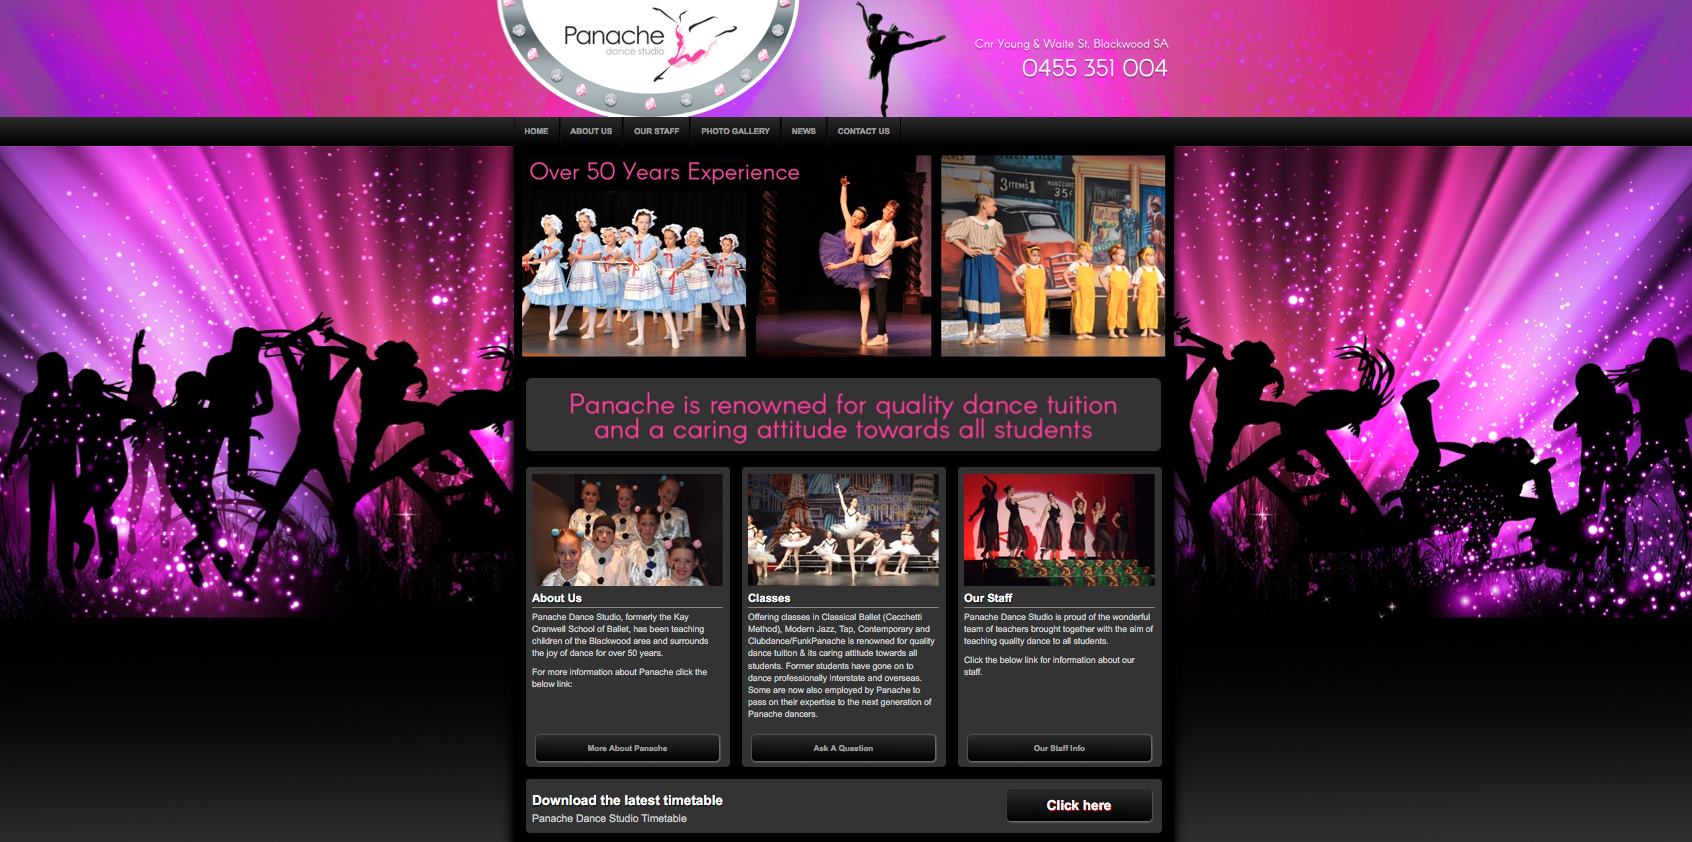 New Website Launched for Panache Dance Studio!